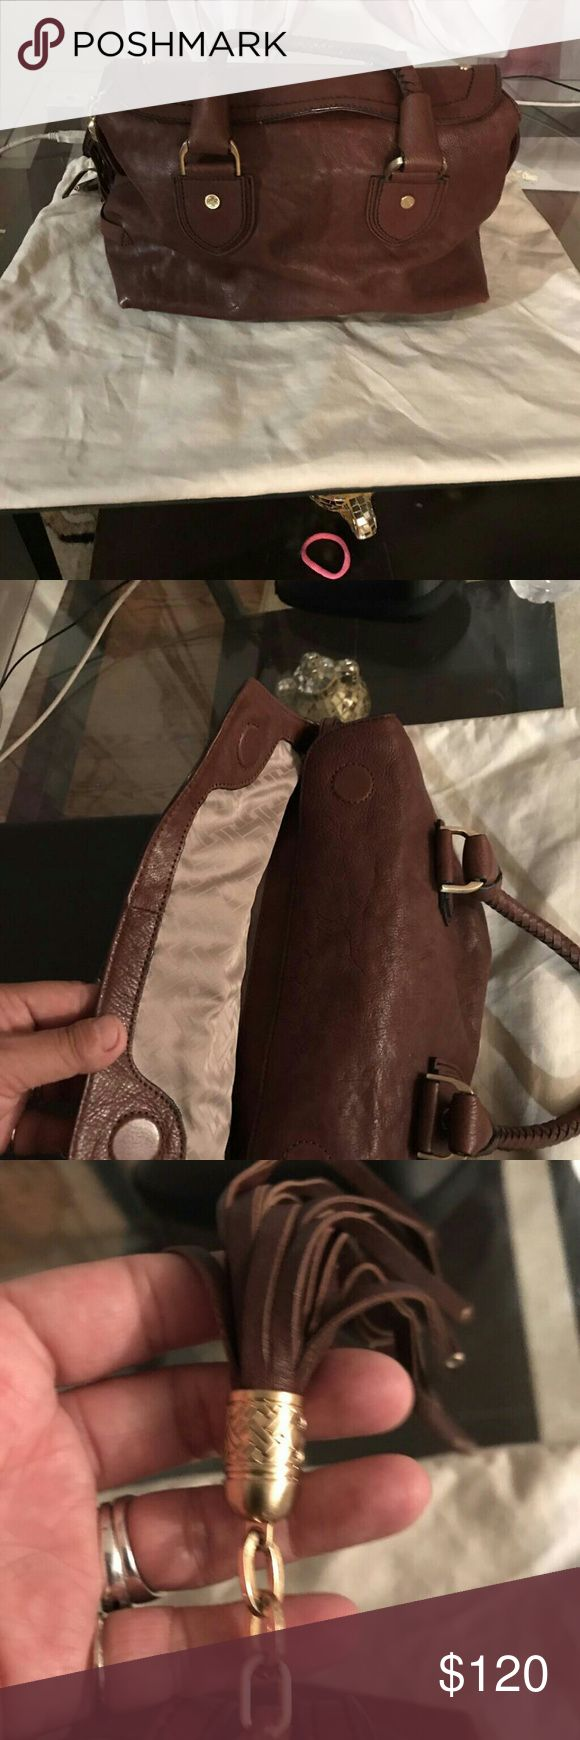 💯Authentic Cole Haan Leather Purse Great condition. One day used. Little small to me that's why iI am sale now.  Next day shipping📫 Cole Haan Bags Clutches & Wristlets